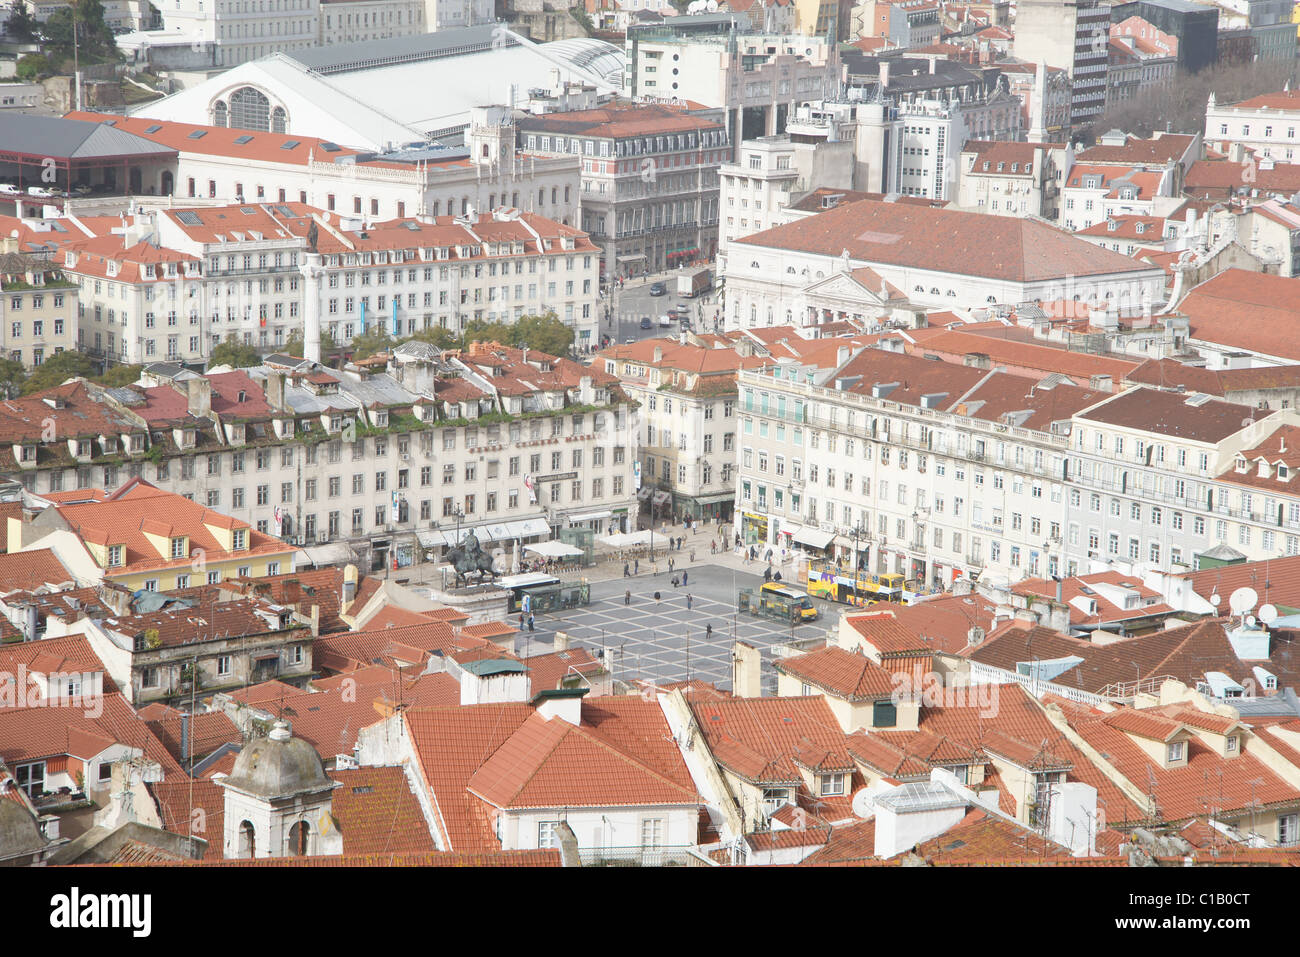 LISBON CITY CENTRE VIEWED FROM ST GEORGES CASTLE - Stock Image